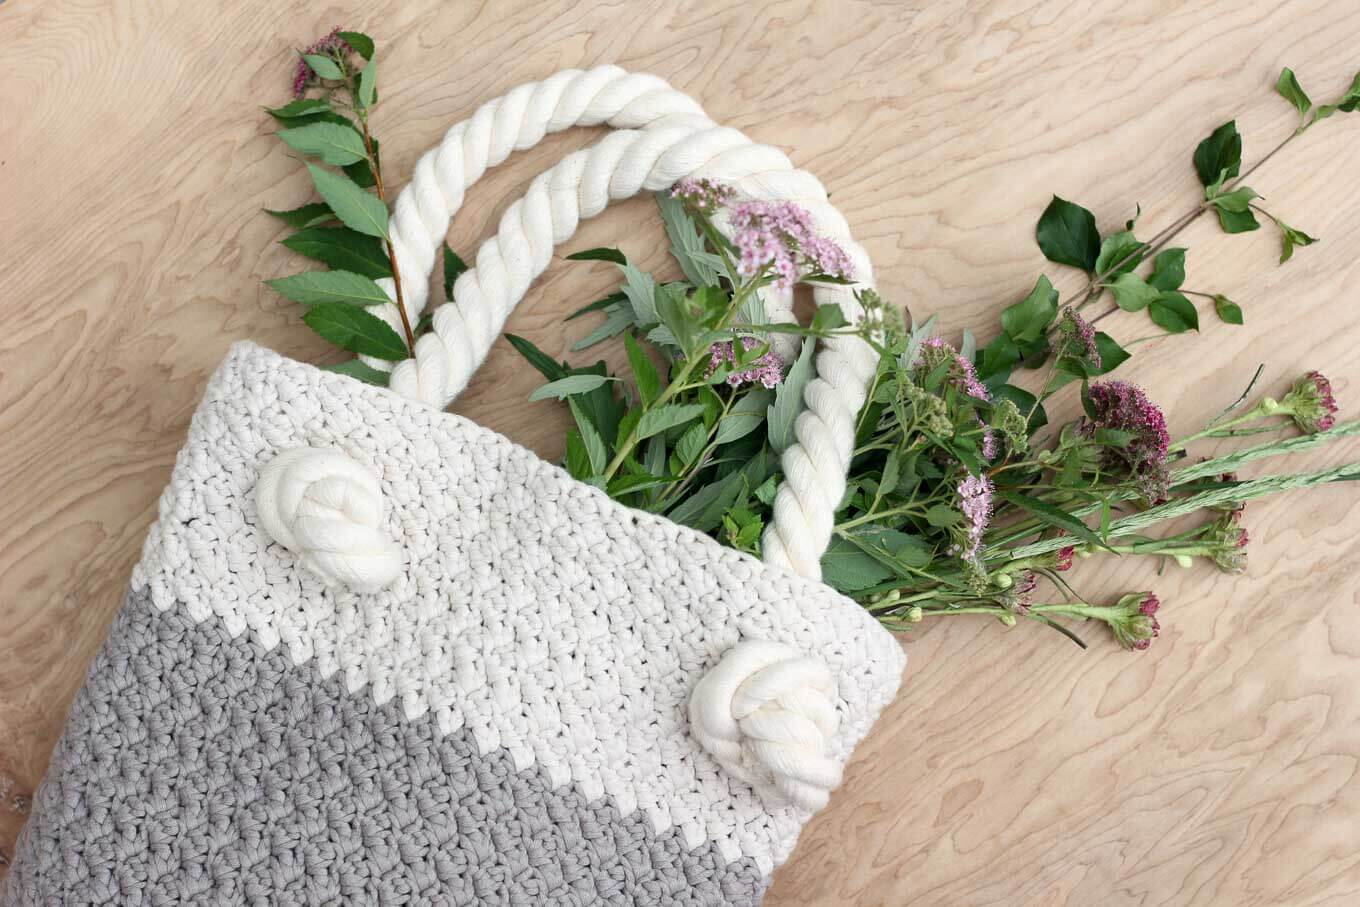 Easy Crochet Purse Patterns For Beginners : Easy + Modern Free Crochet Bag Pattern for Beginners